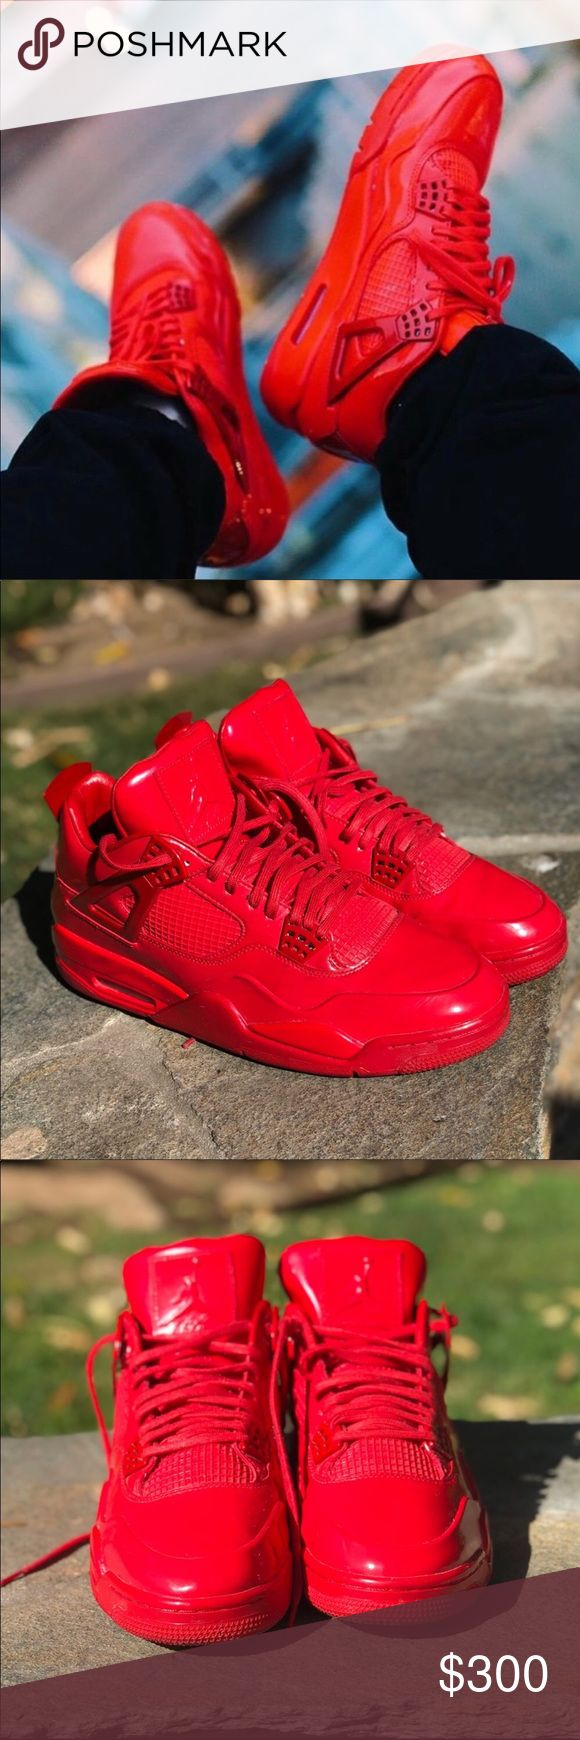 NIKE 🌹 AIR JORDAN 4 | 11LAB4 size 12 MEN These amazing AIR JORDAN 4 | 11LAB4 have been pre-loved by my hunny @justinstyleco but are in EXCELLENT USED CONDITION, as shown in all the photos. These are size 12 MENS. No original box at this time (but we are looking for it!) All of Justin's Jordans are stored neatly in clear boxes 😍    Ships securely same or next day from my smoke free home.  PRICE is FIRM, offers will be considered through the offer button only. Bundle items to save…